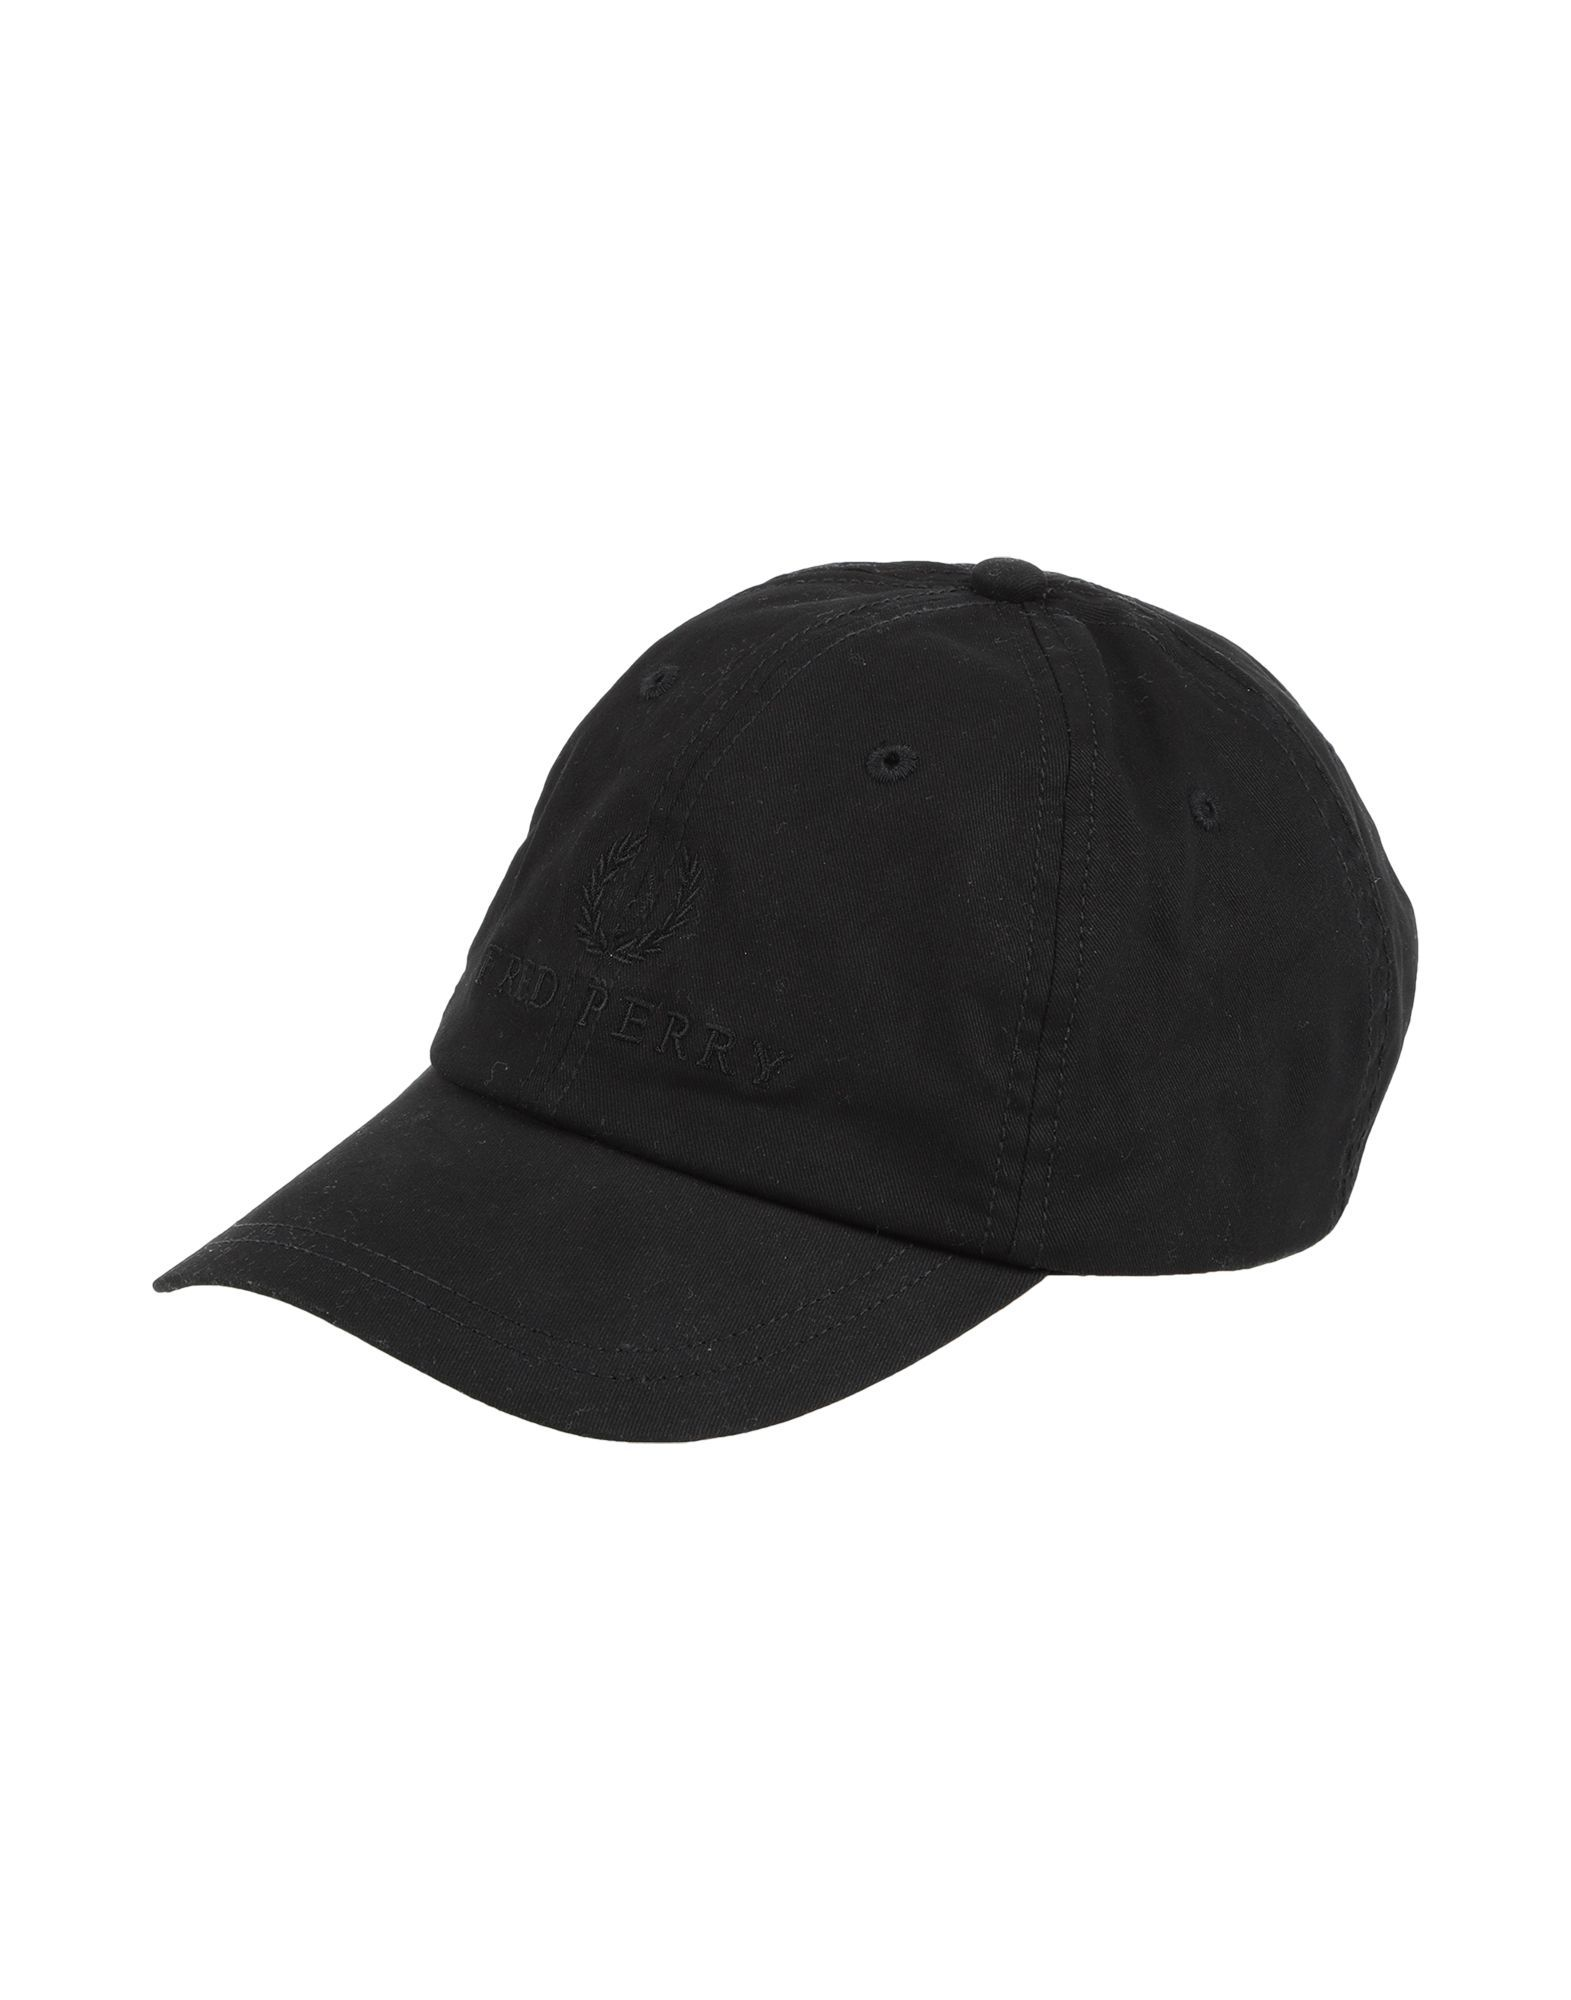 b6fdfe886e9f7 FRED PERRY HATS.  fredperry